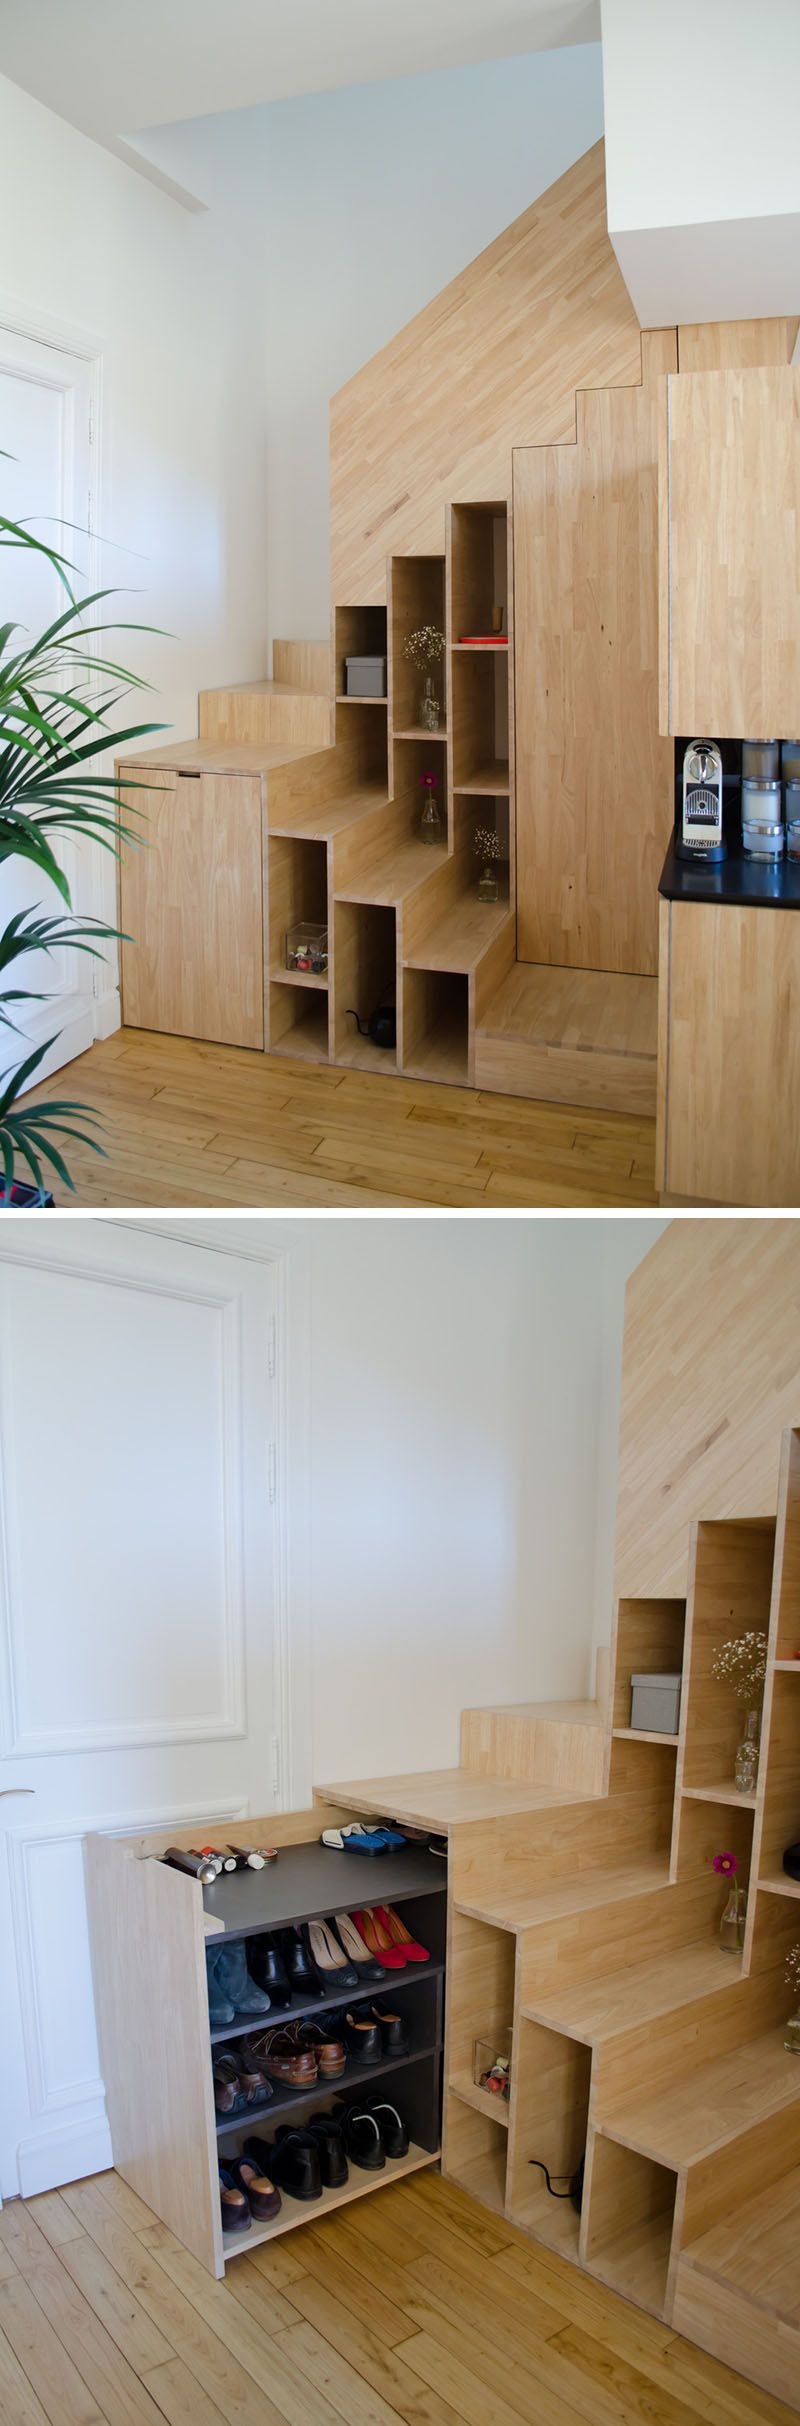 These stairs have builtin shelves and hidden shoe storage